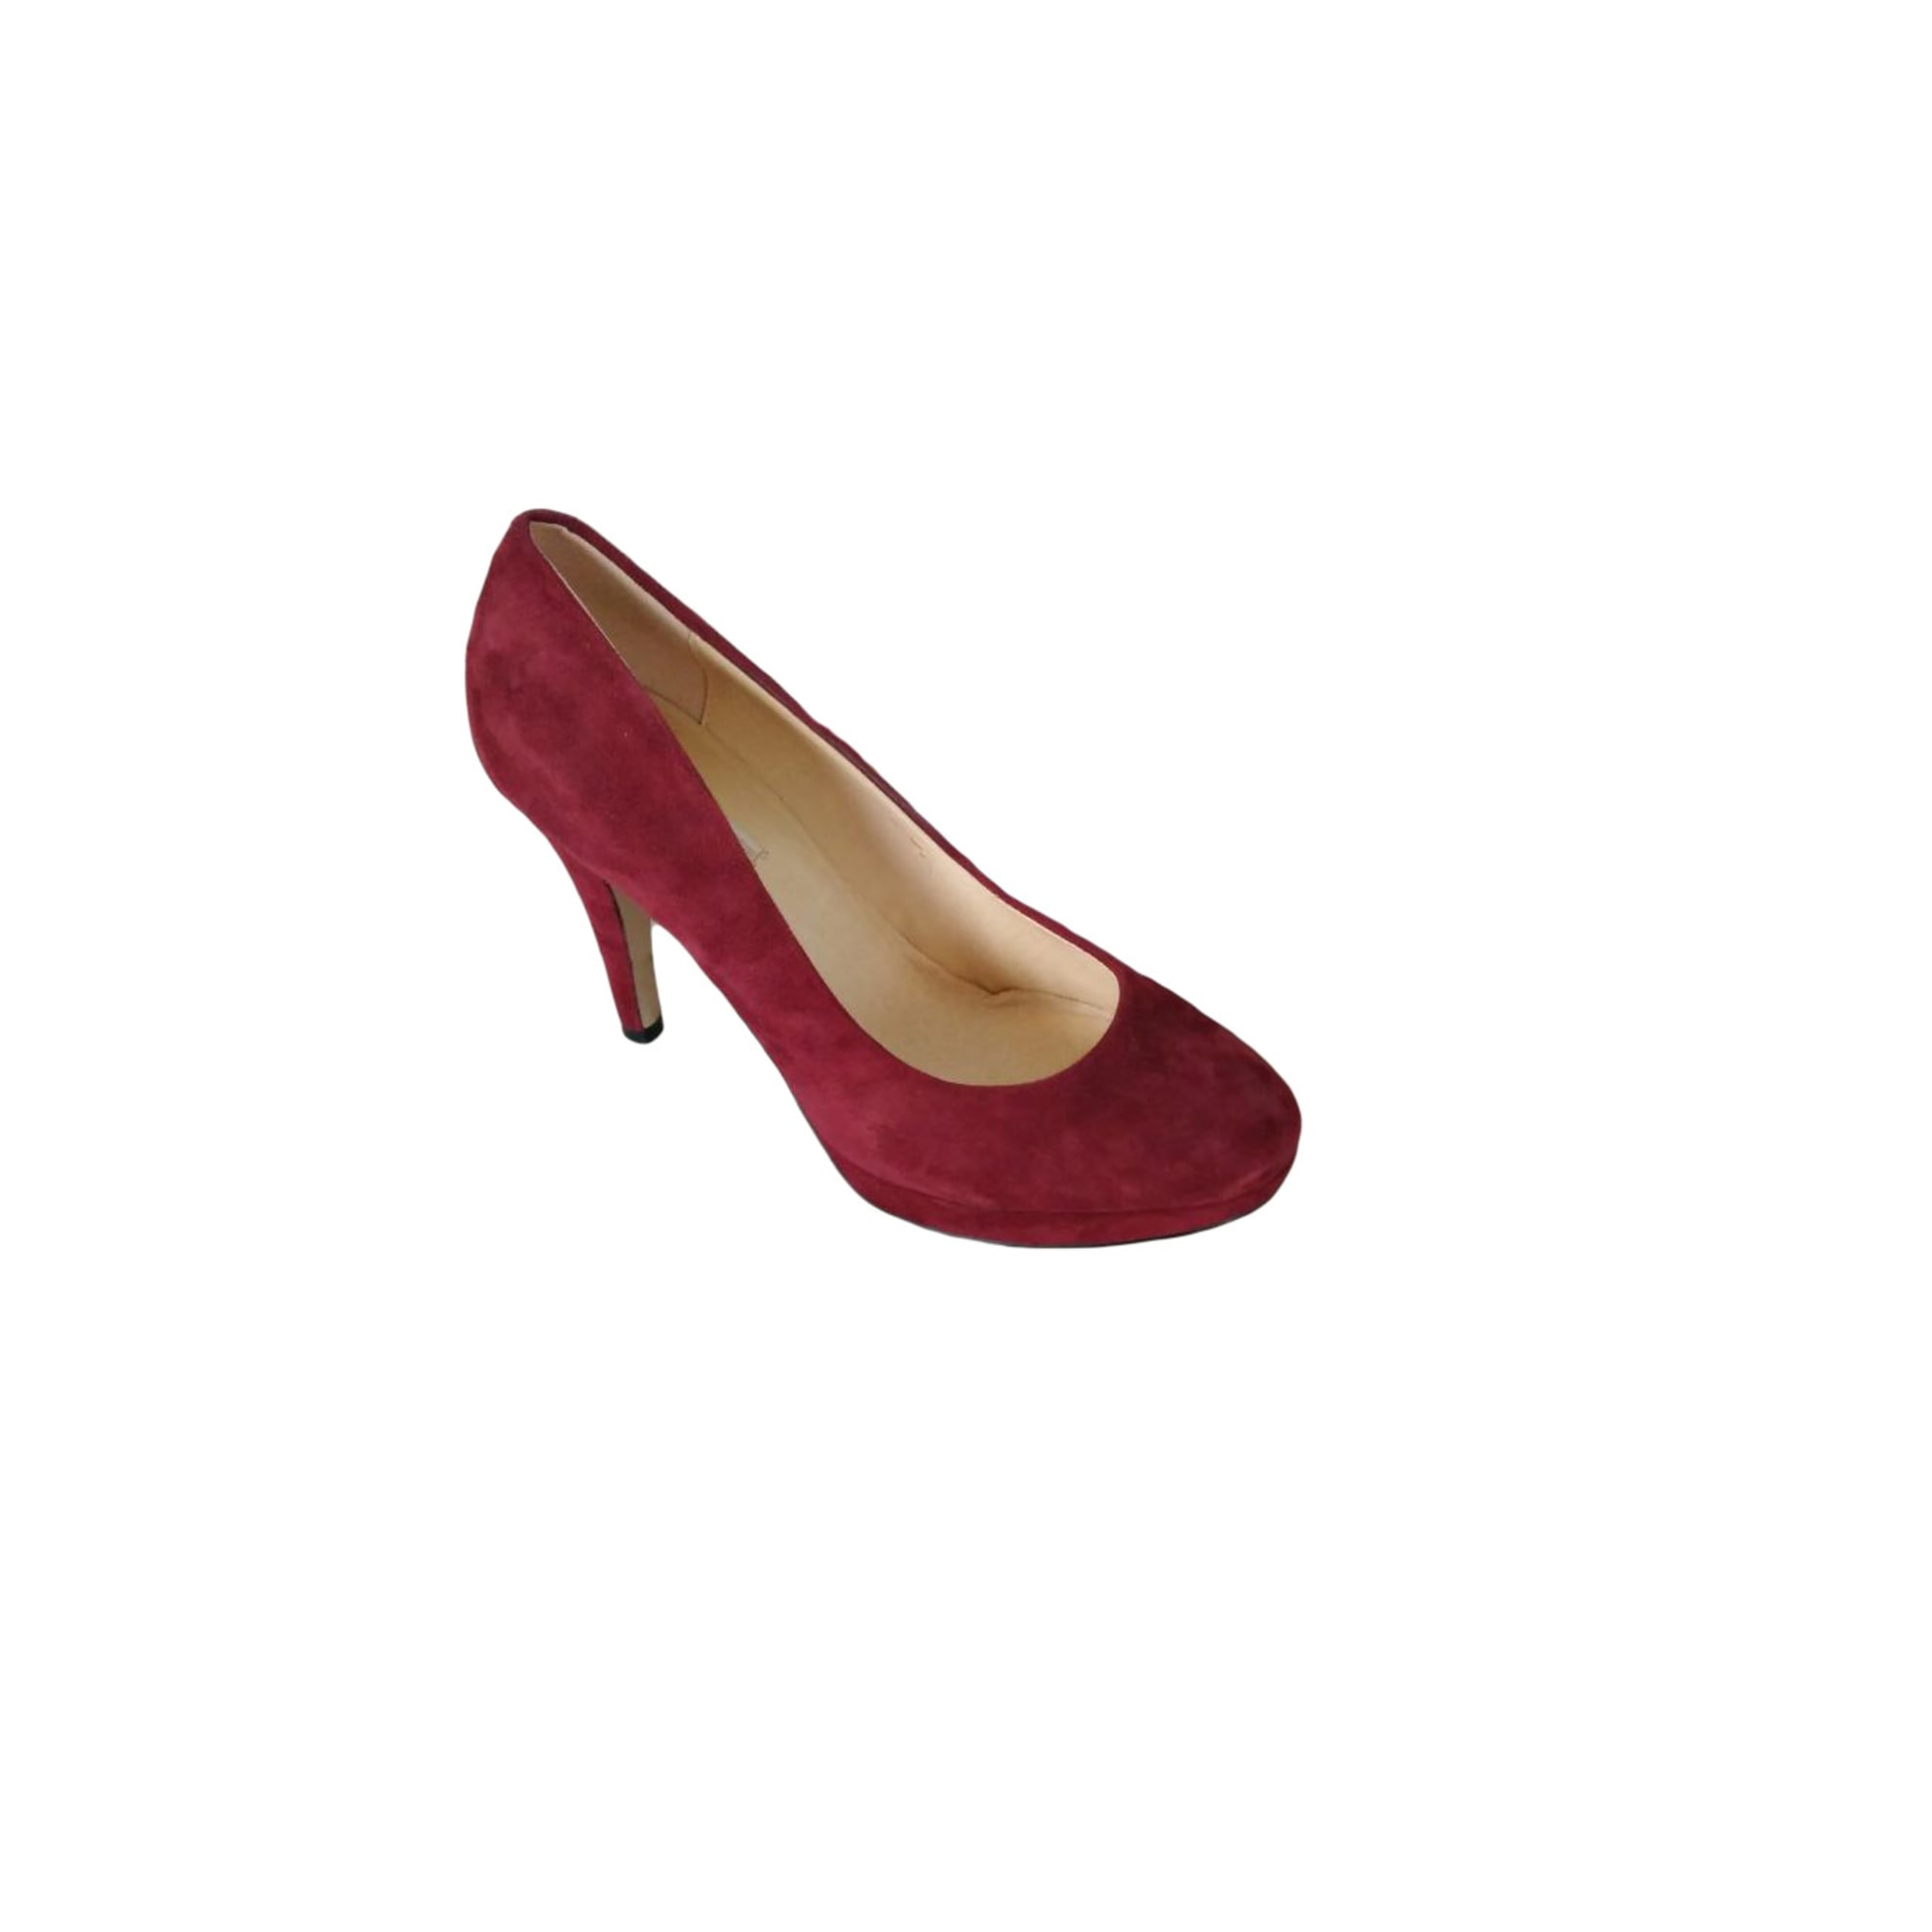 Pumps, Heels BUFFALO Red, burgundy